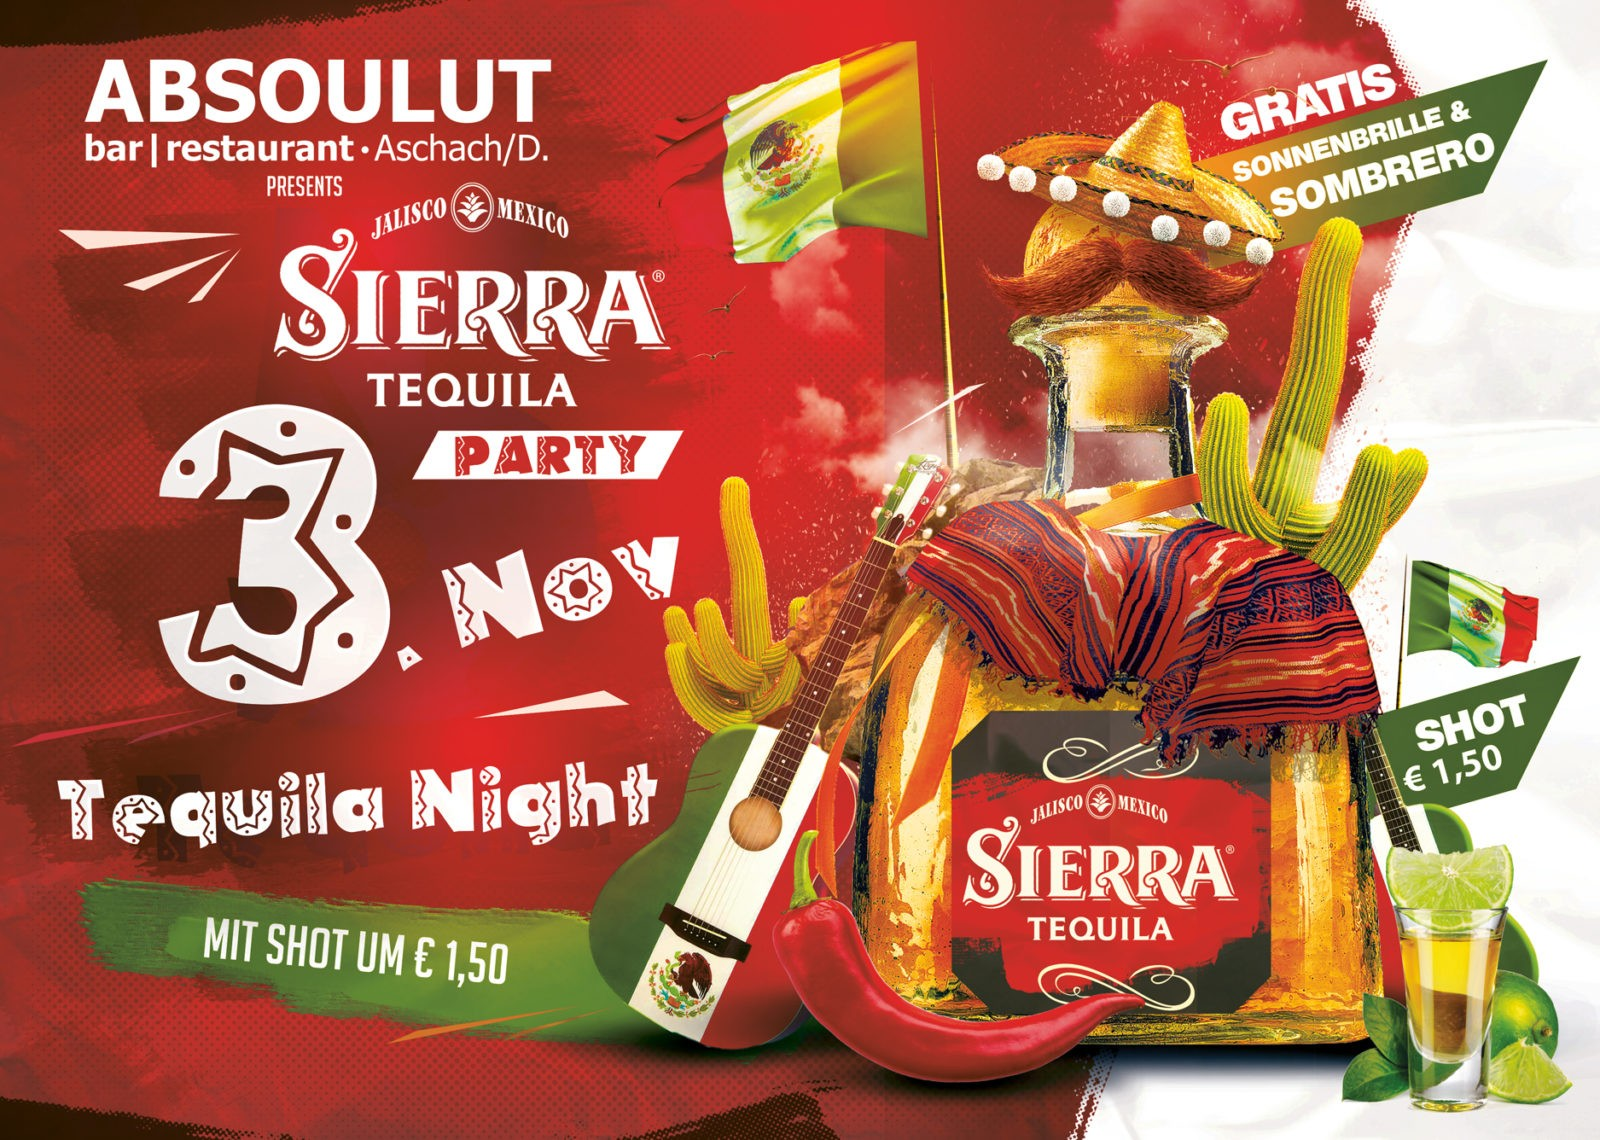 Absolut Bar Restaurant Events - Tequila